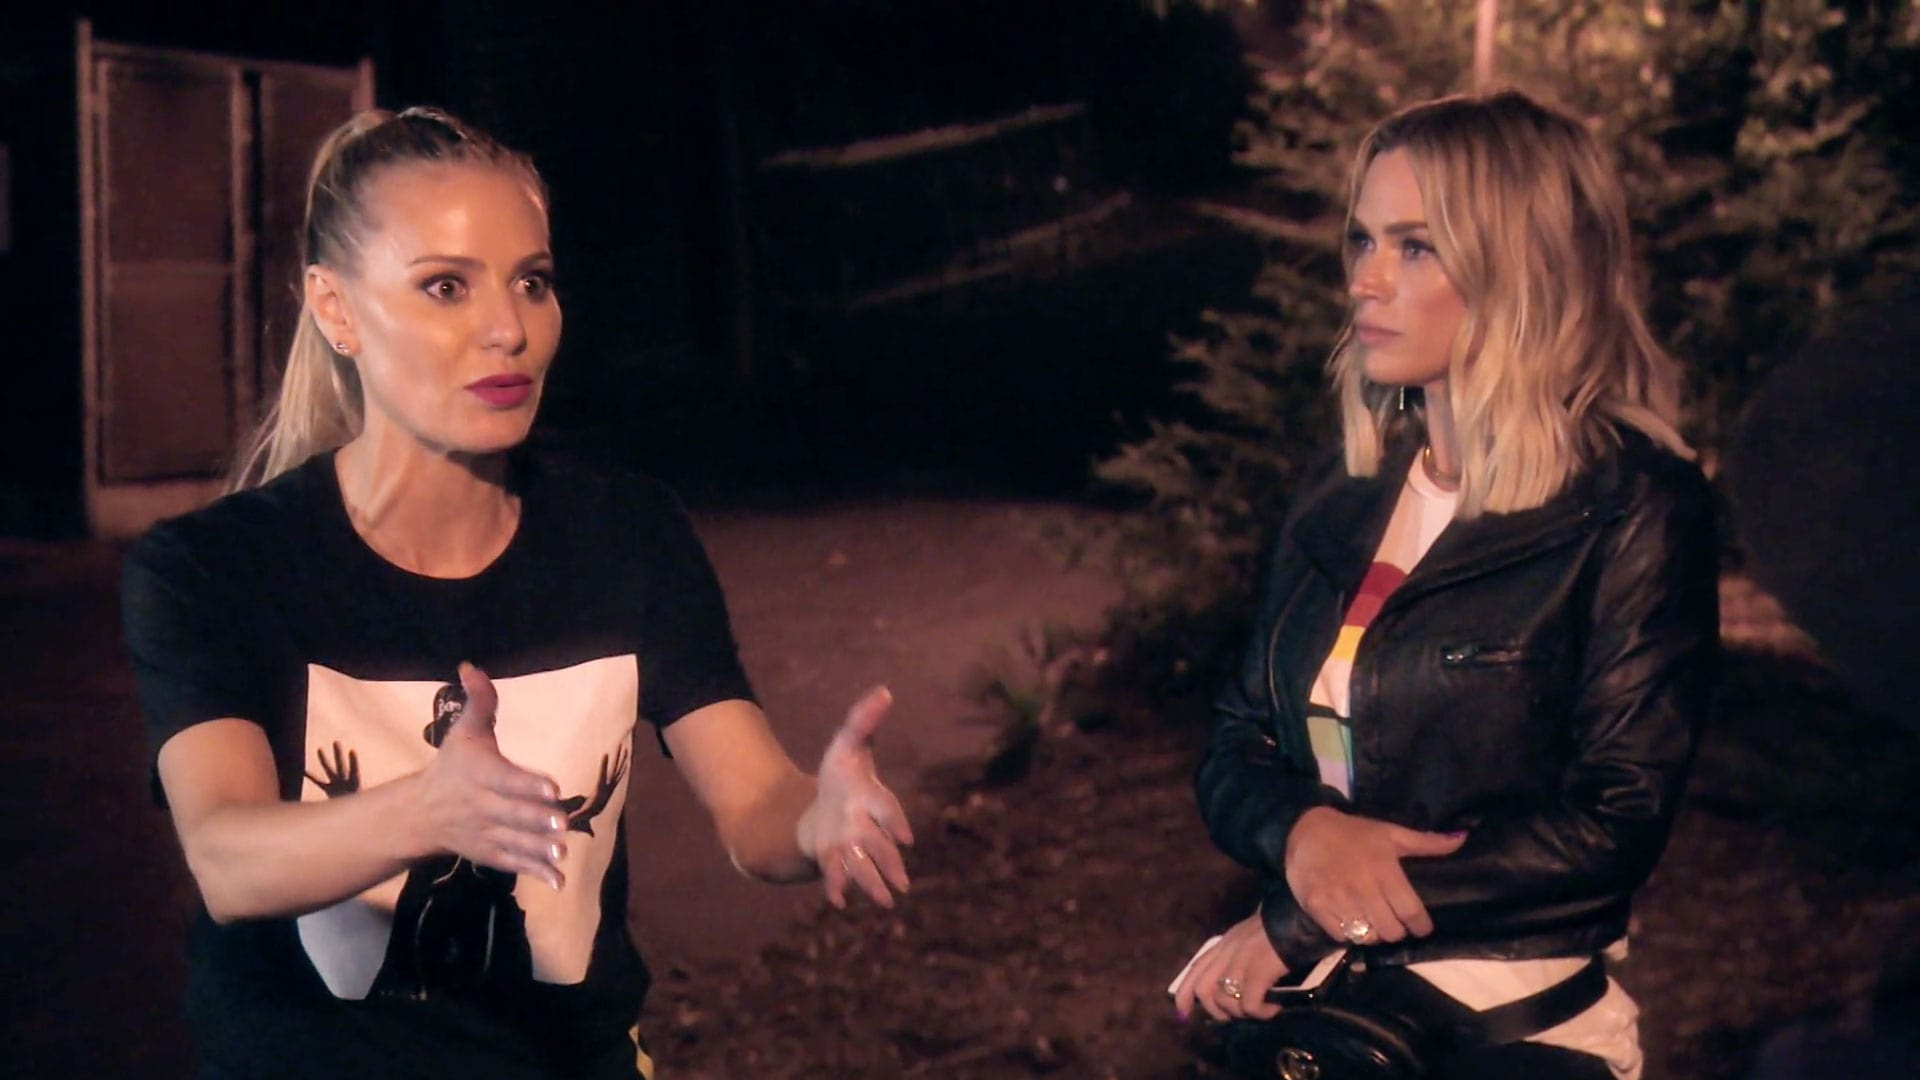 real housewives of beverly hills season 4 episode 10 videobull